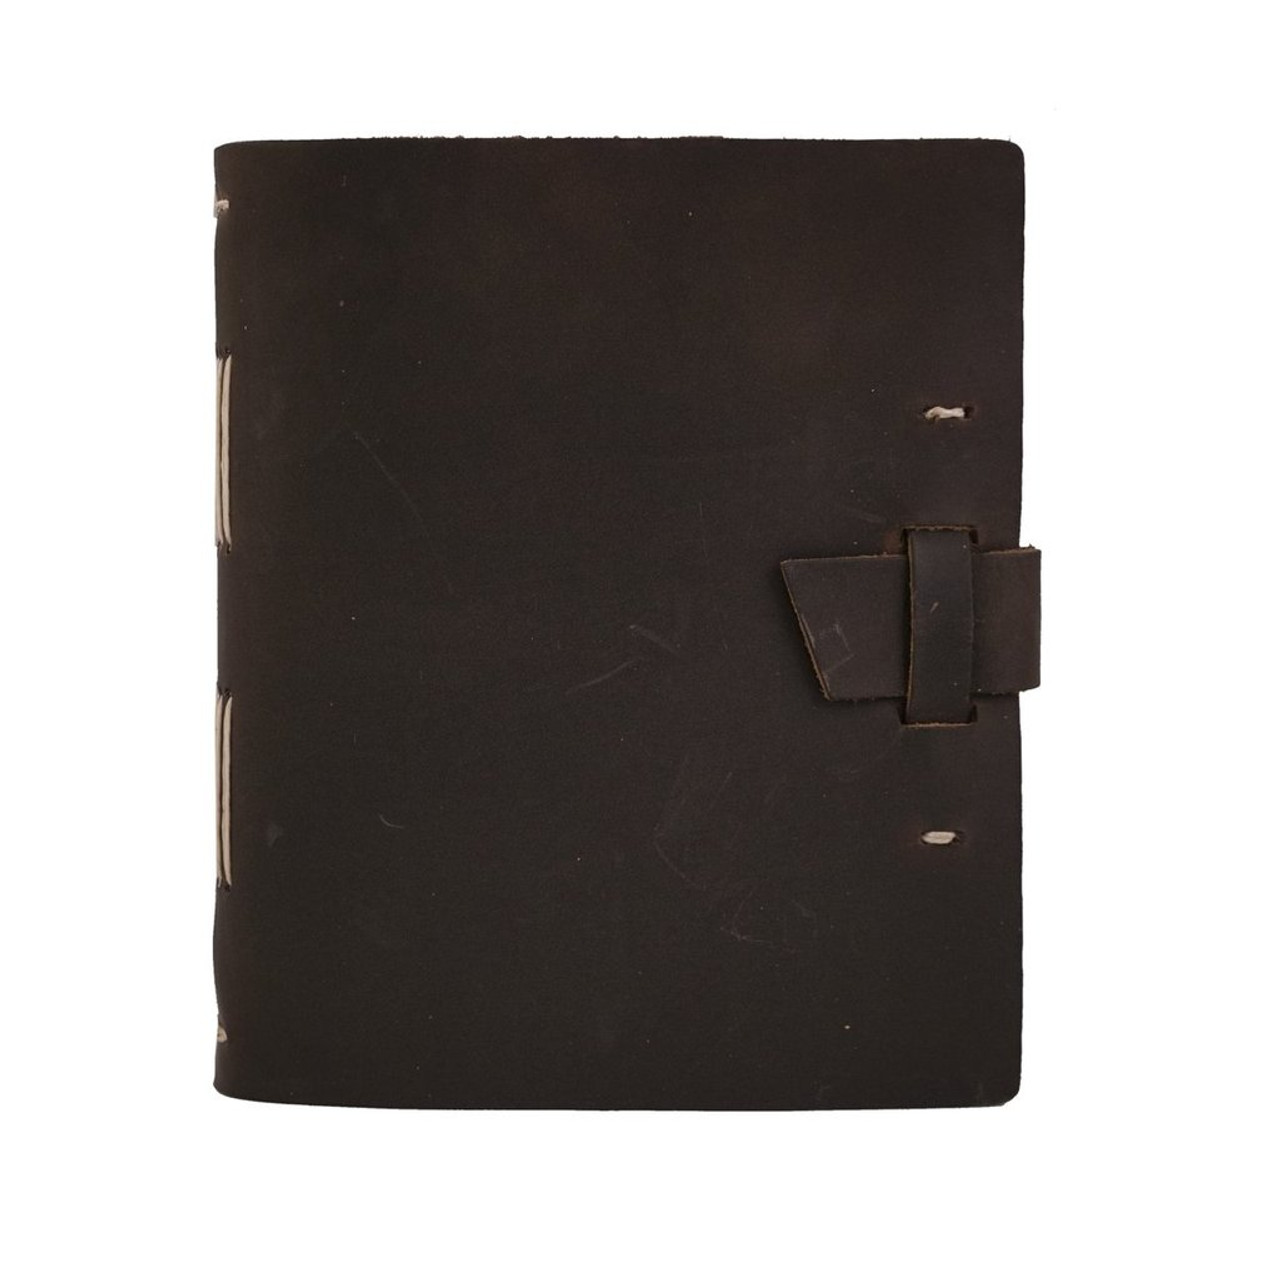 Rustico travelers journal with buckle